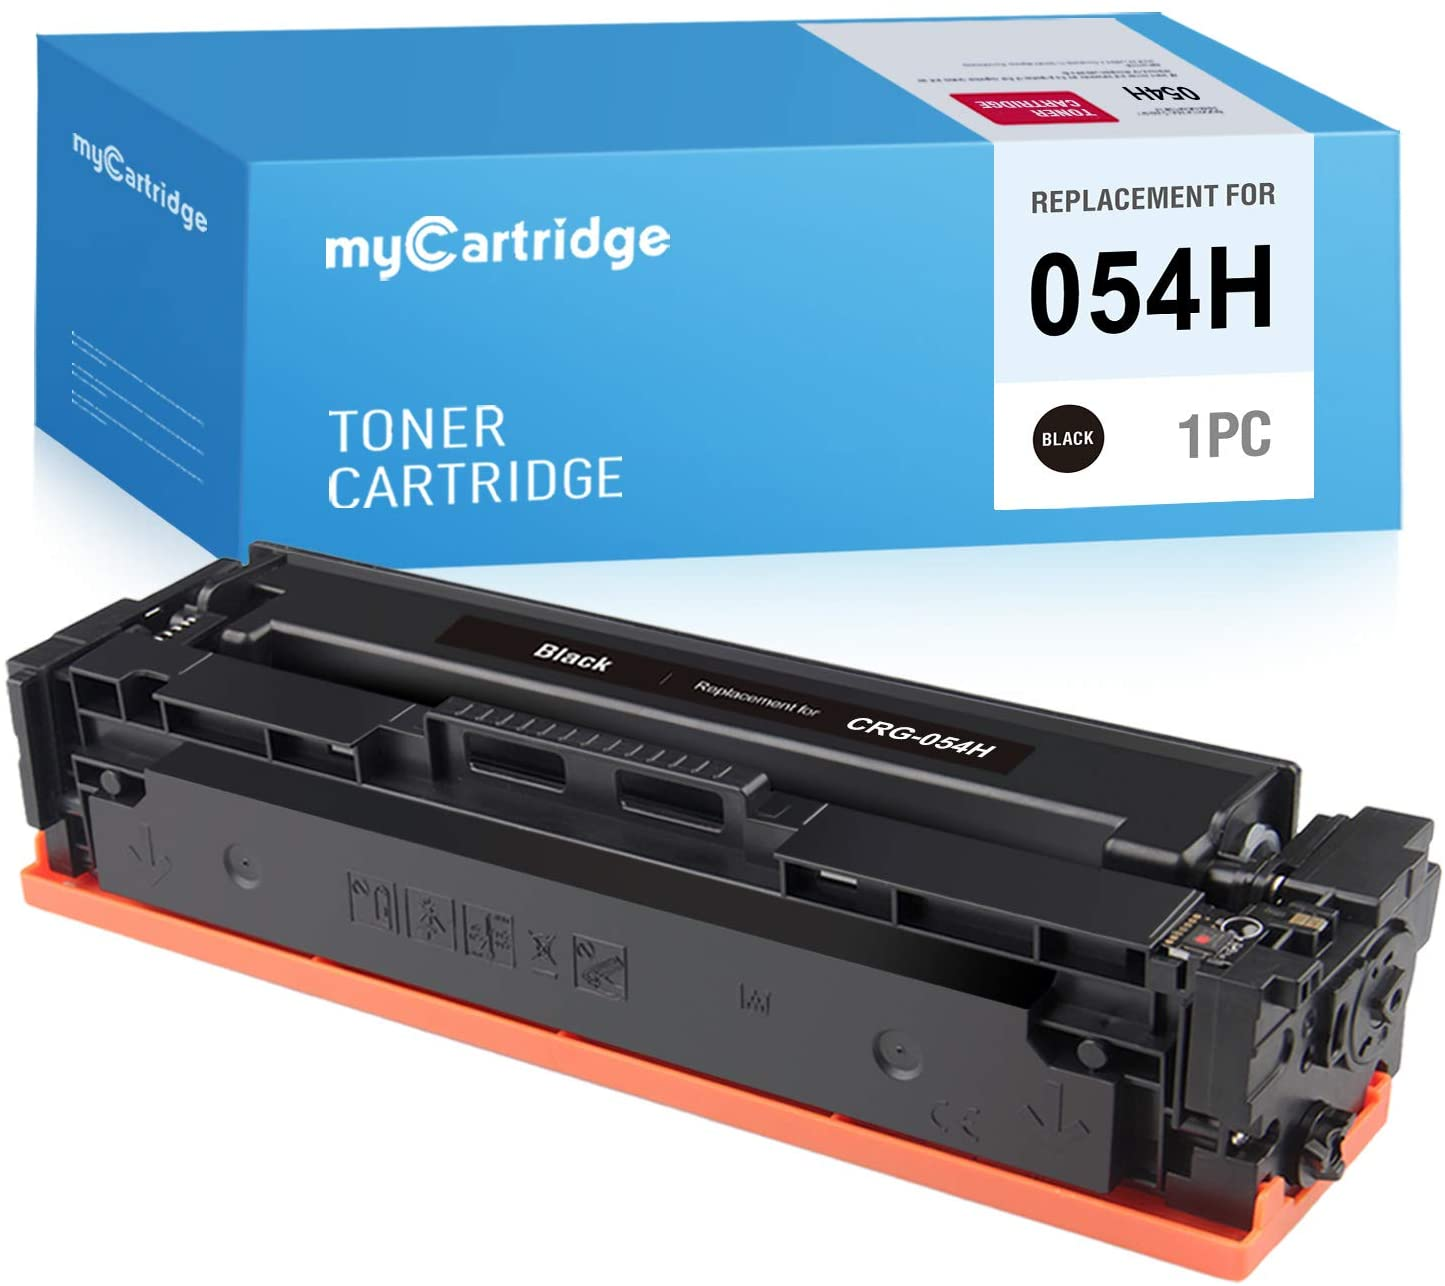 MYCARTRIDGE Compatible Toner Cartridge Replacement for Canon 054H CRG-054H 054 Use with Image Class MF644Cdw MF642Cdw MF640C LBP622Cdw LBP620 (Black, 1-Pack)